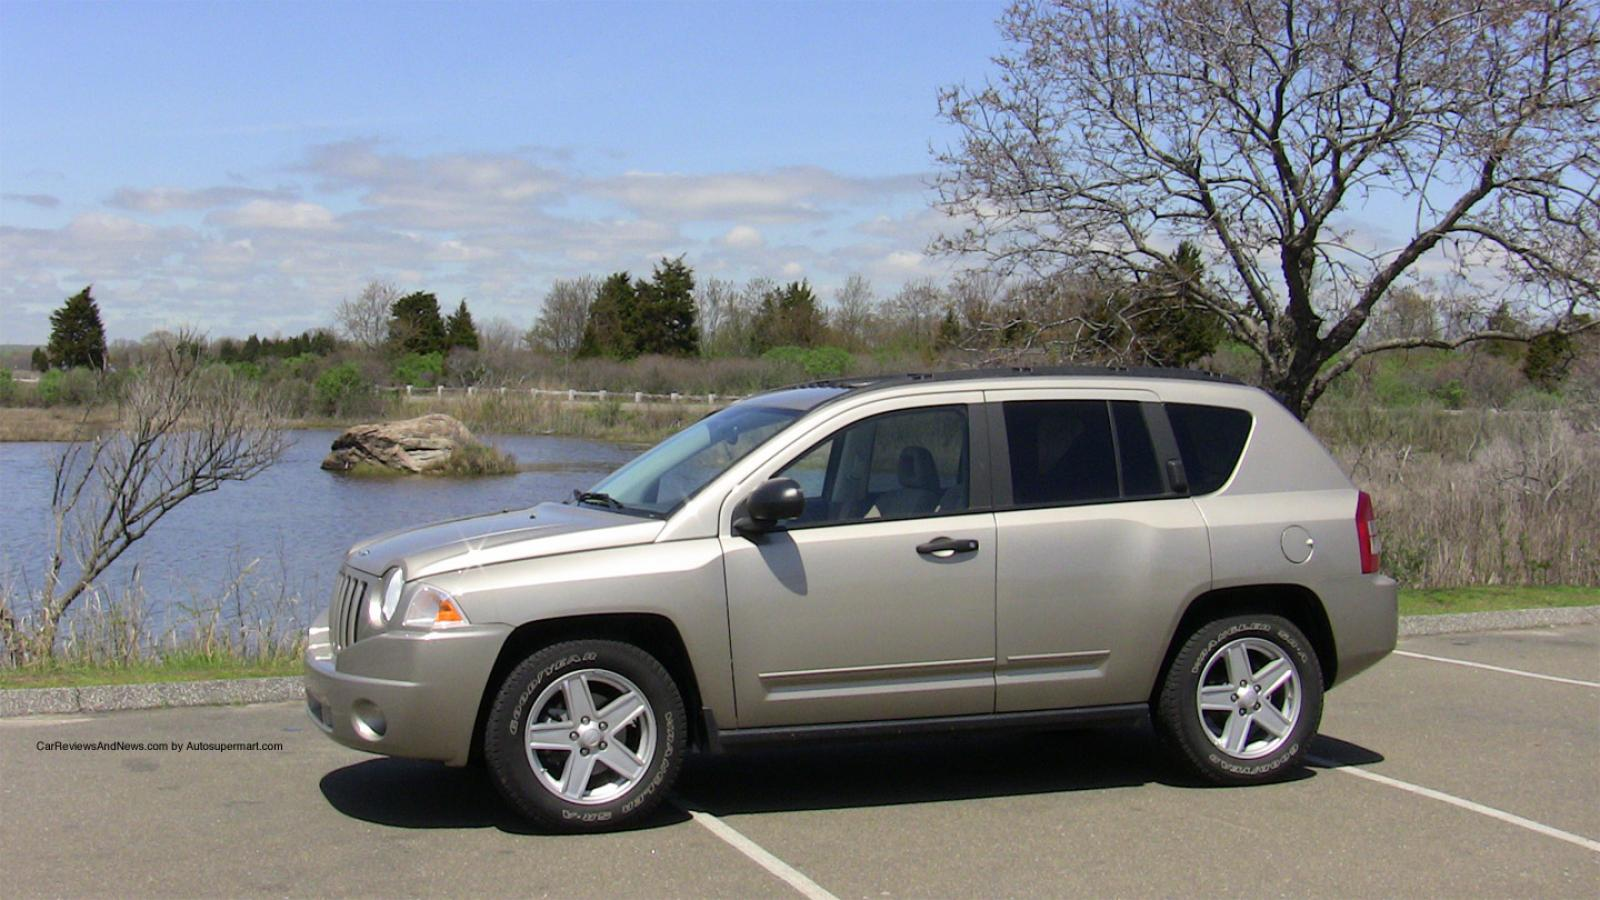 2009 jeep compass information and photos zombiedrive. Black Bedroom Furniture Sets. Home Design Ideas